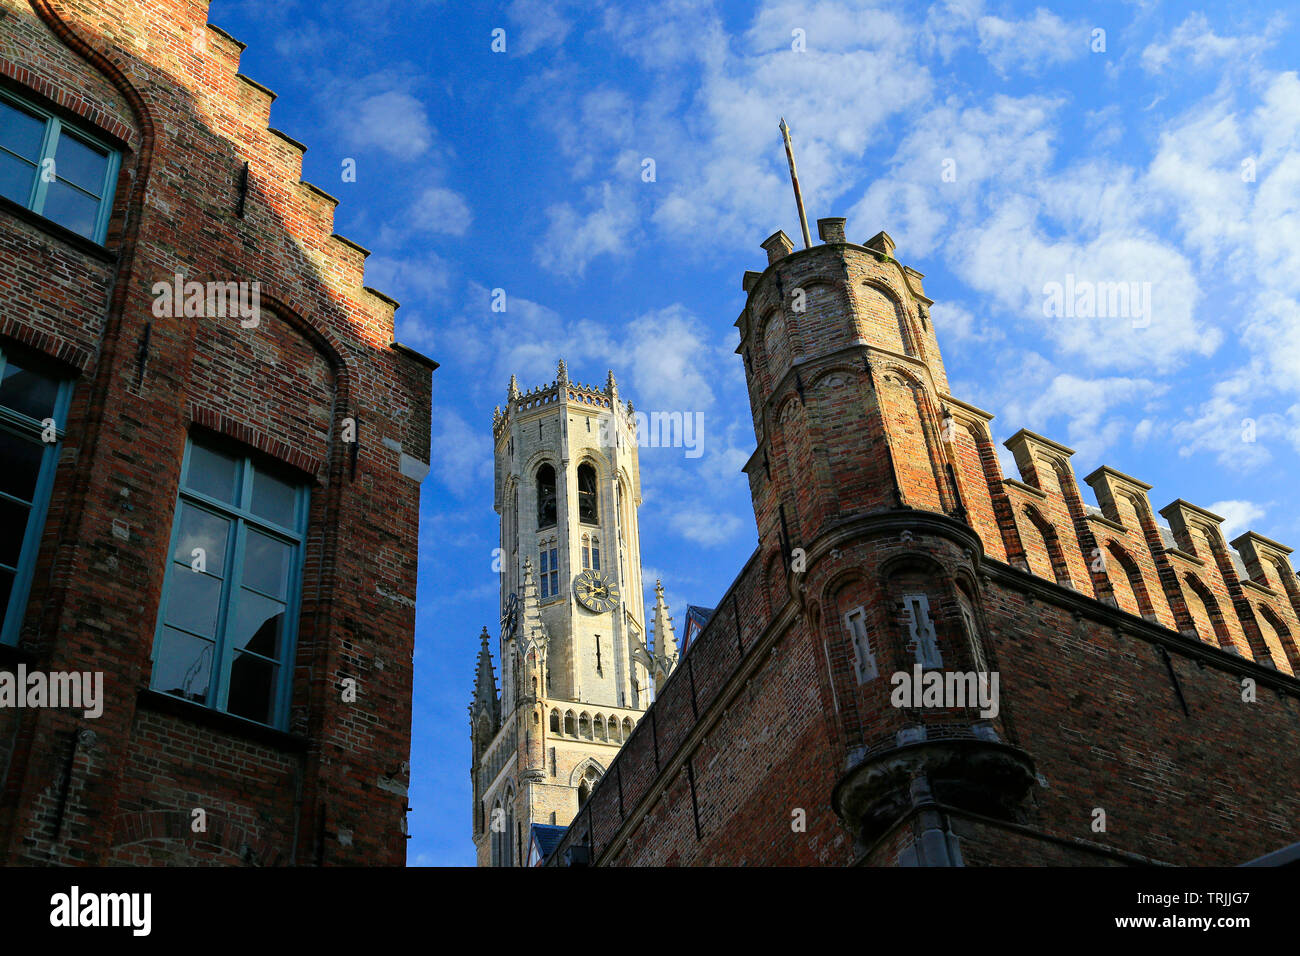 Brugge clocktower and crenellated wall against a blue sky. Stock Photo